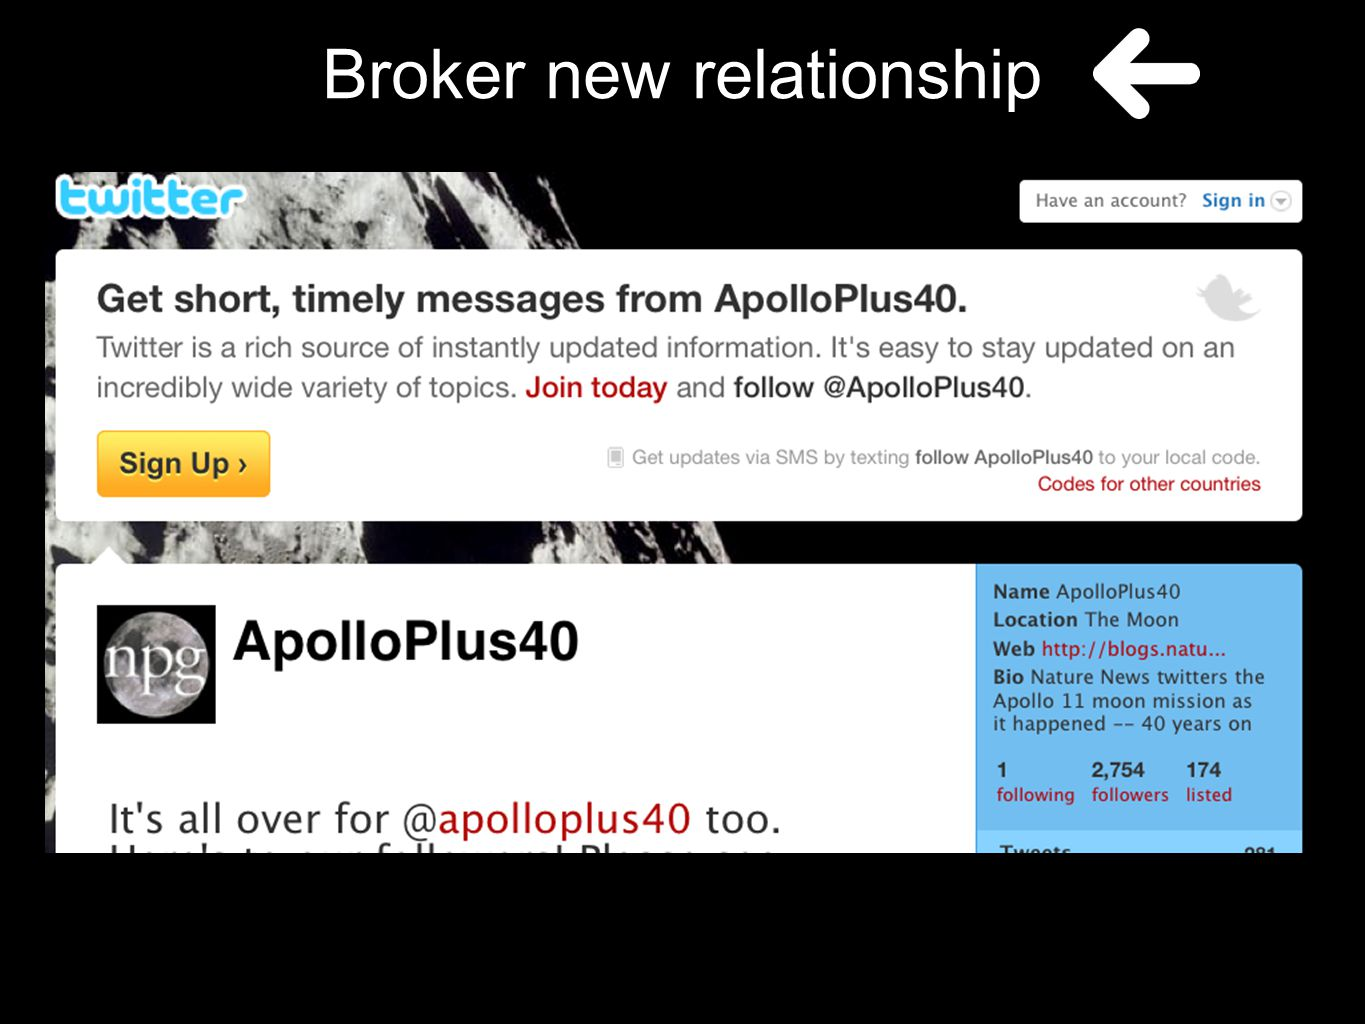 Broker new relationship